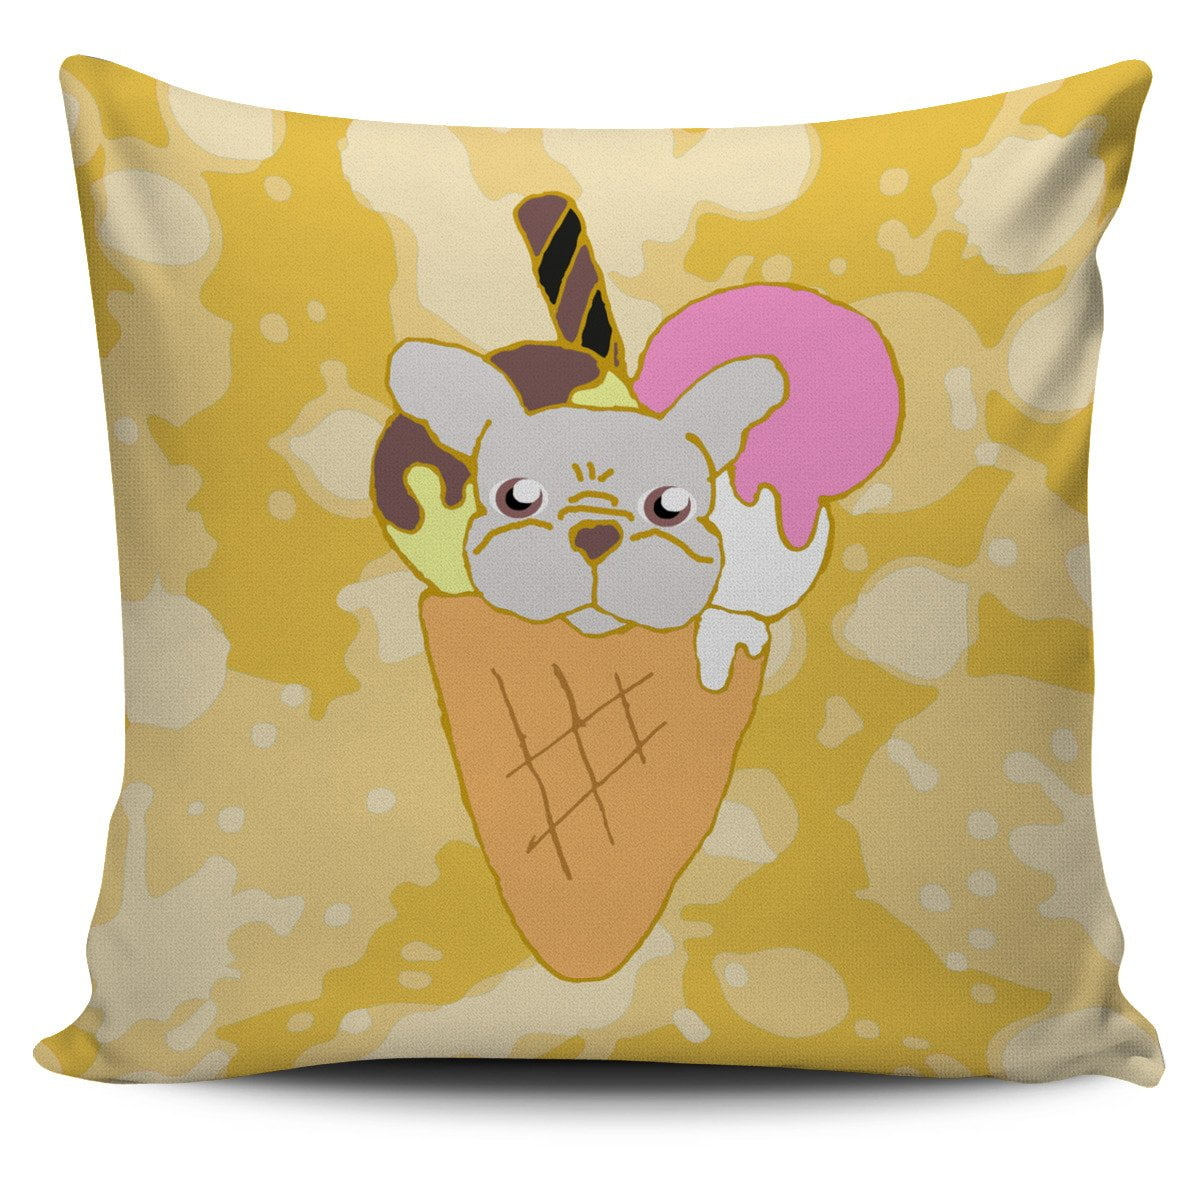 Lucy - Pillow - Frenchie Bulldog Shop